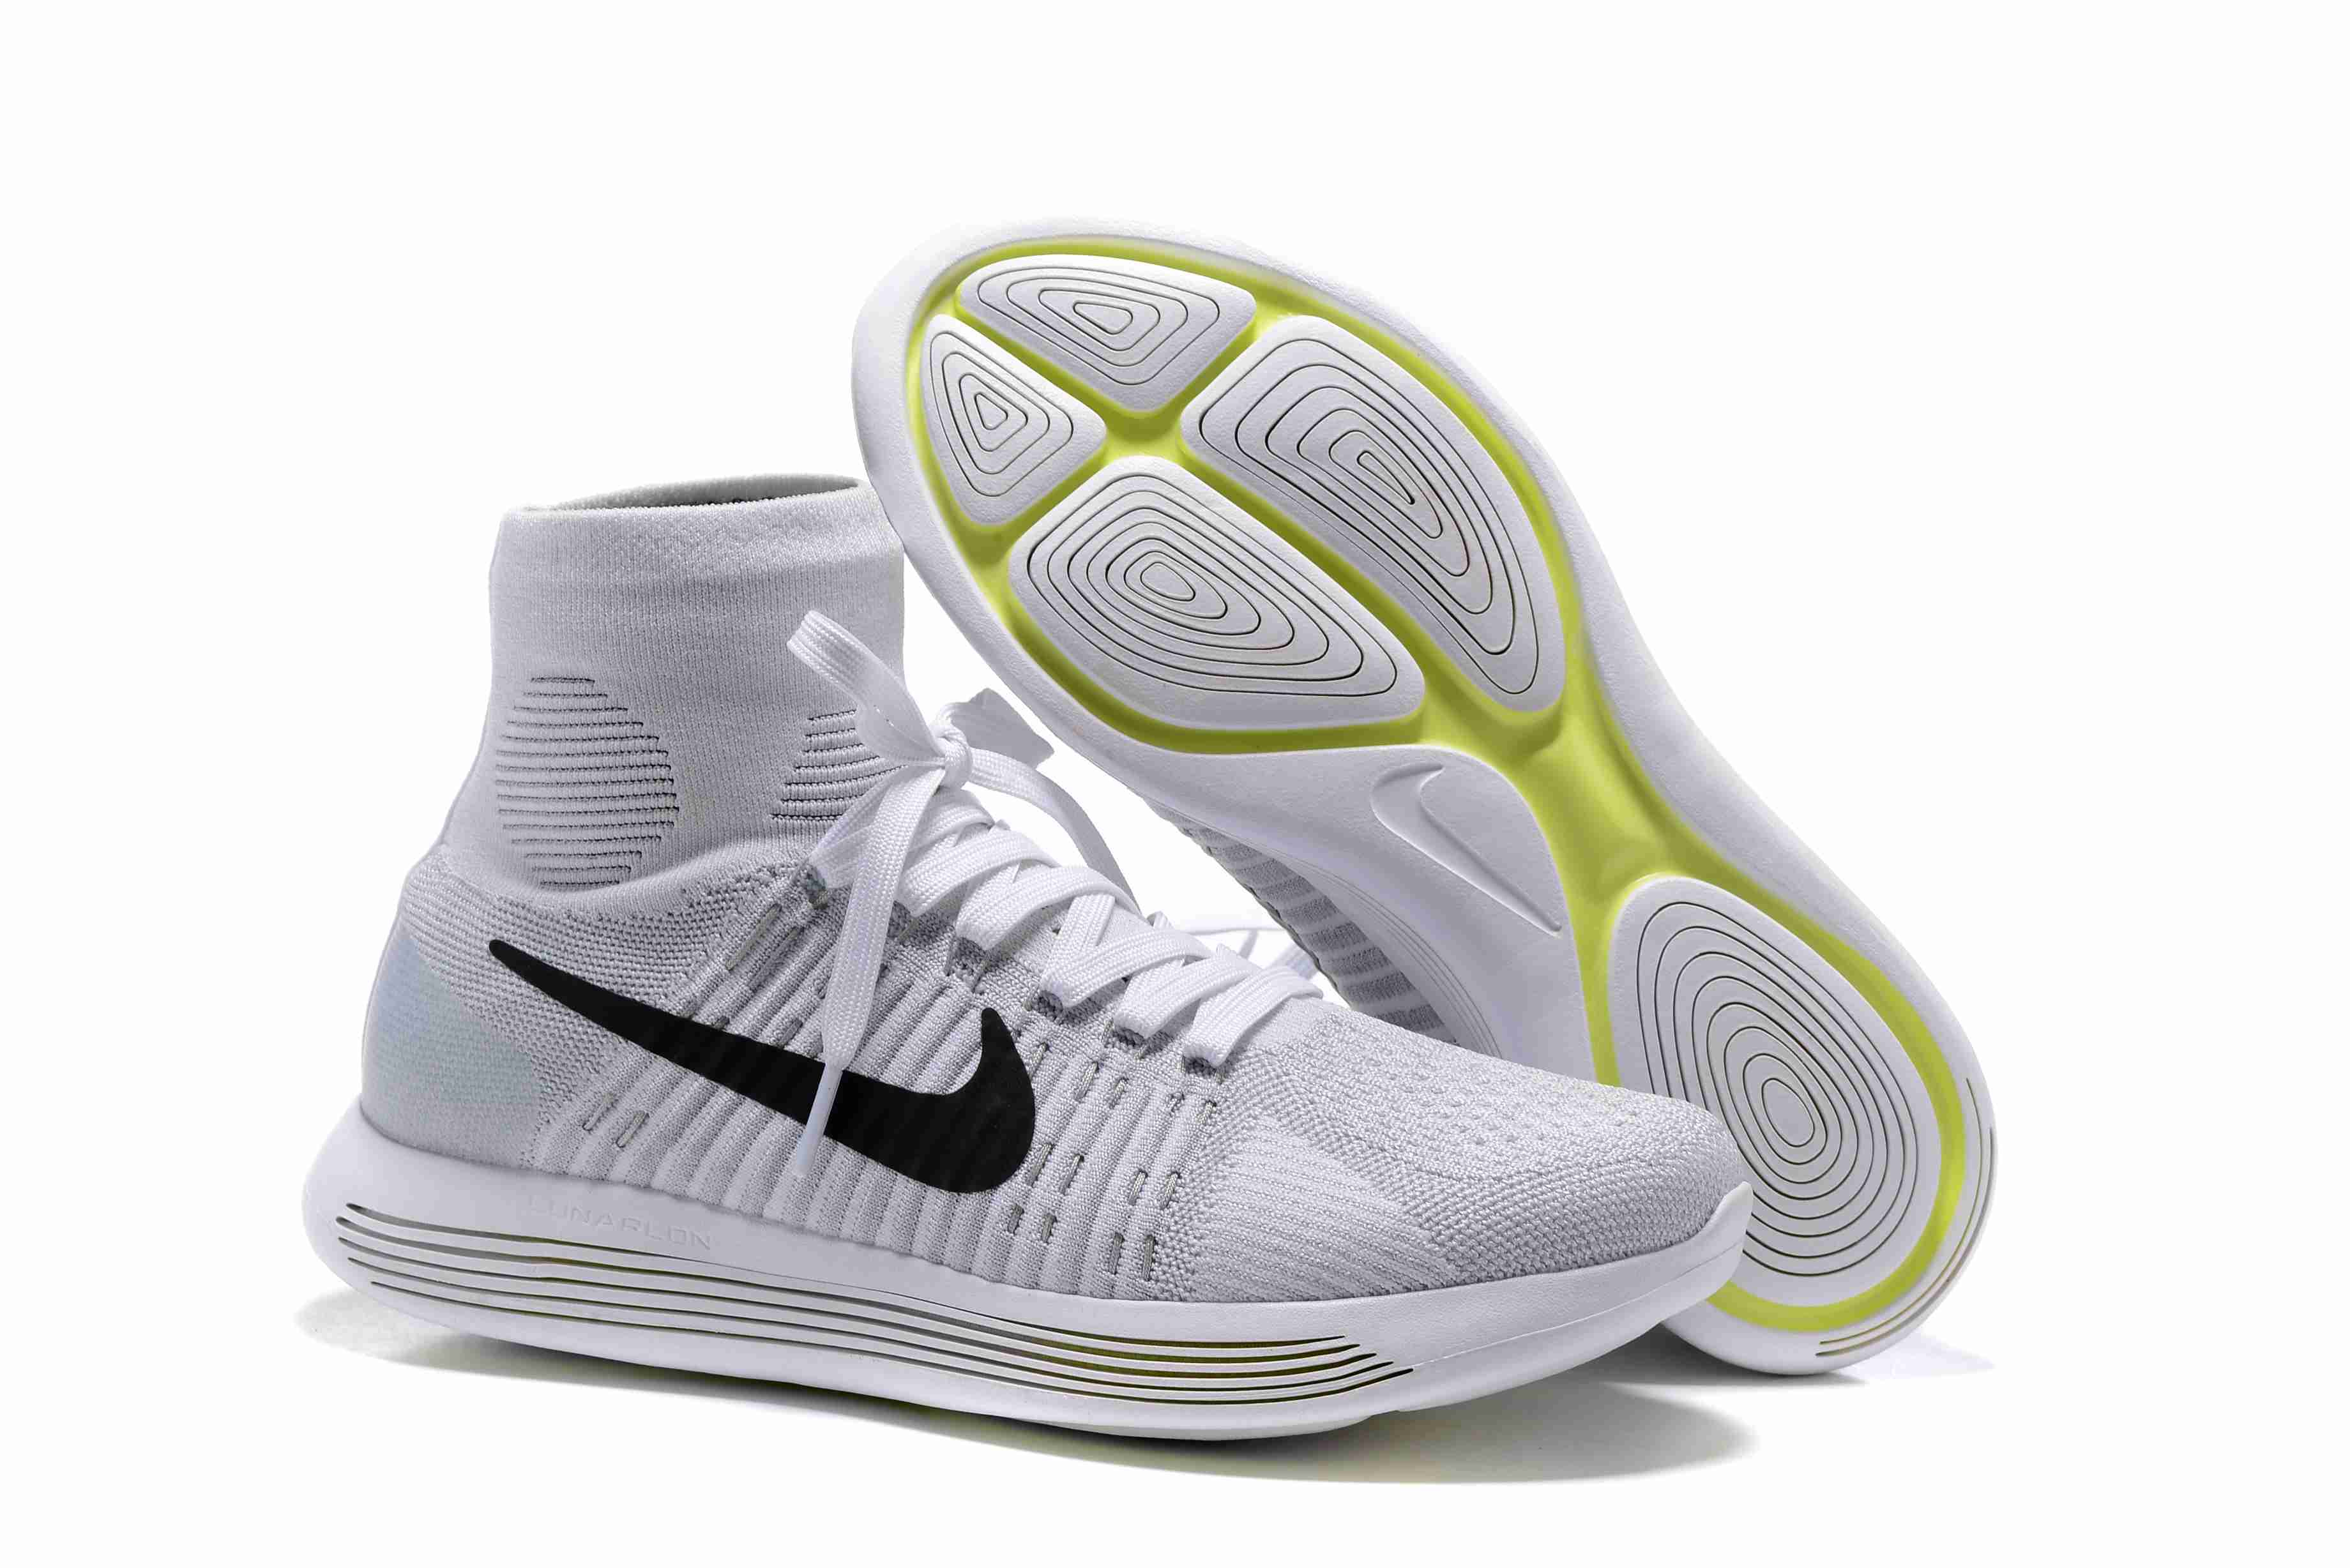 new arrival 4a763 3fa7d nike high top running shoes